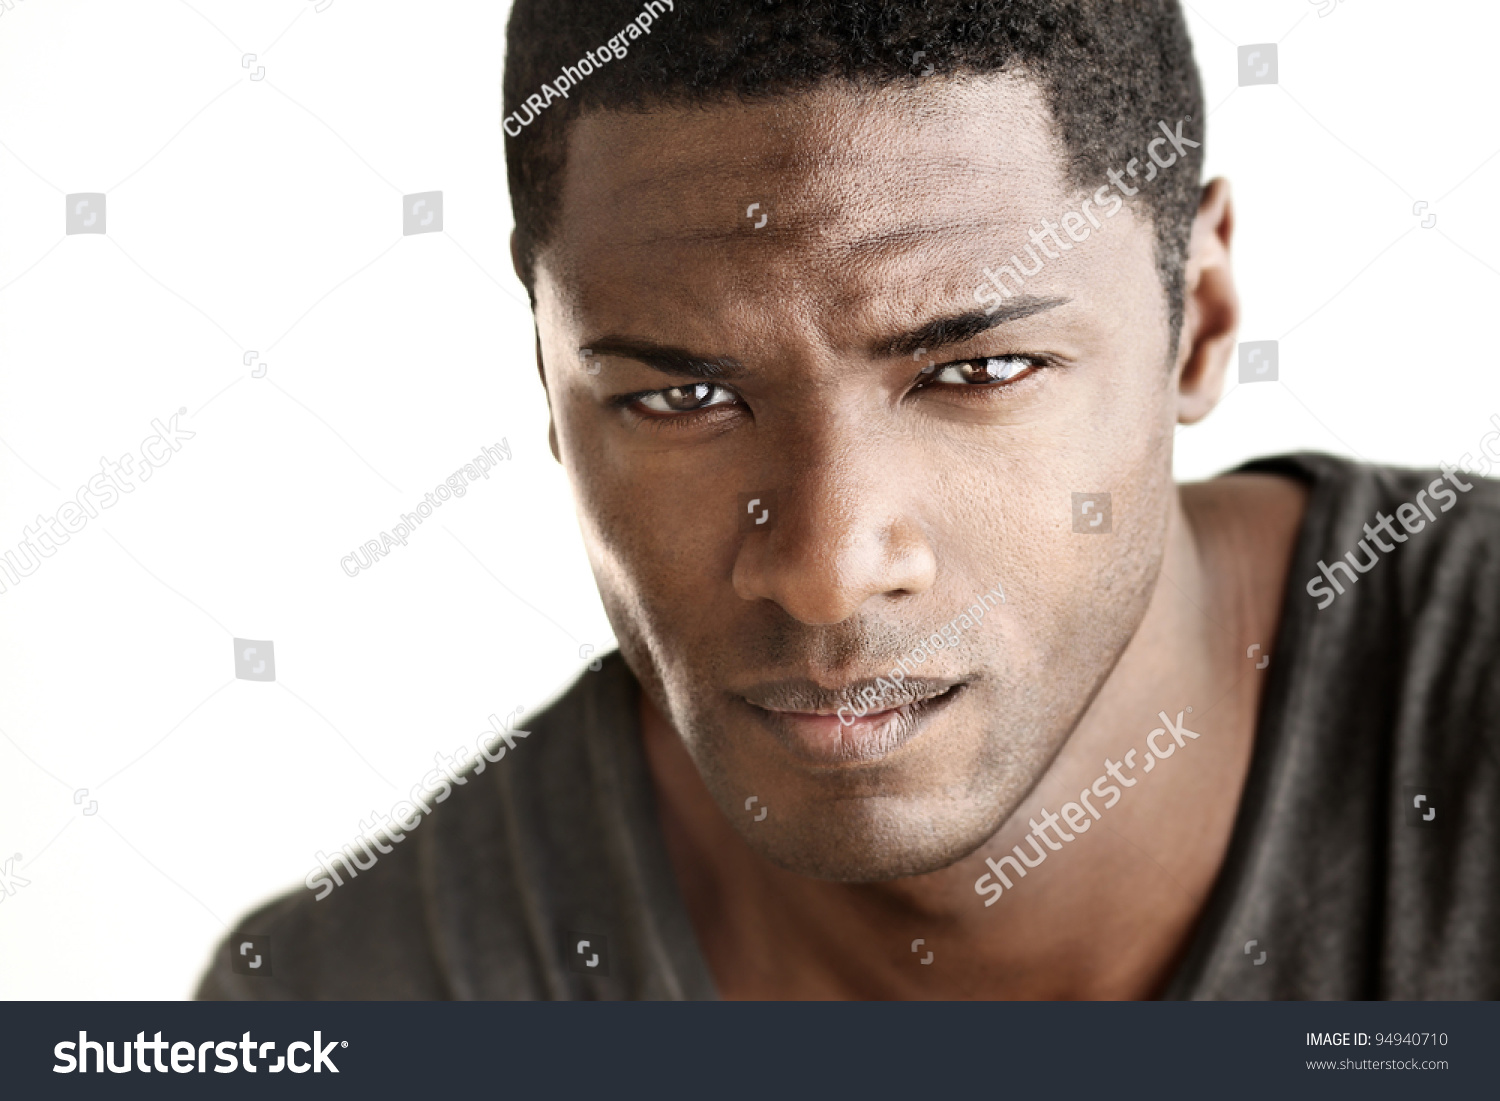 Highly Detail Portrait Young Good Looking Stock Photo ...  Good Looking Young Man